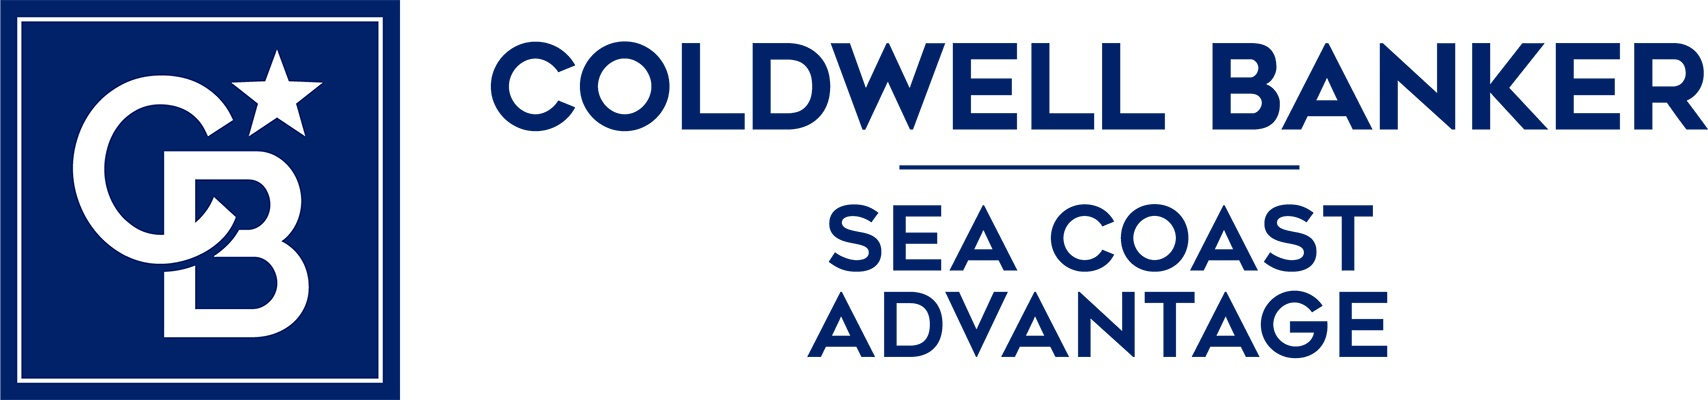 Teresa Hovatter - Coldwell Banker Sea Coast Advantage Realty Logo